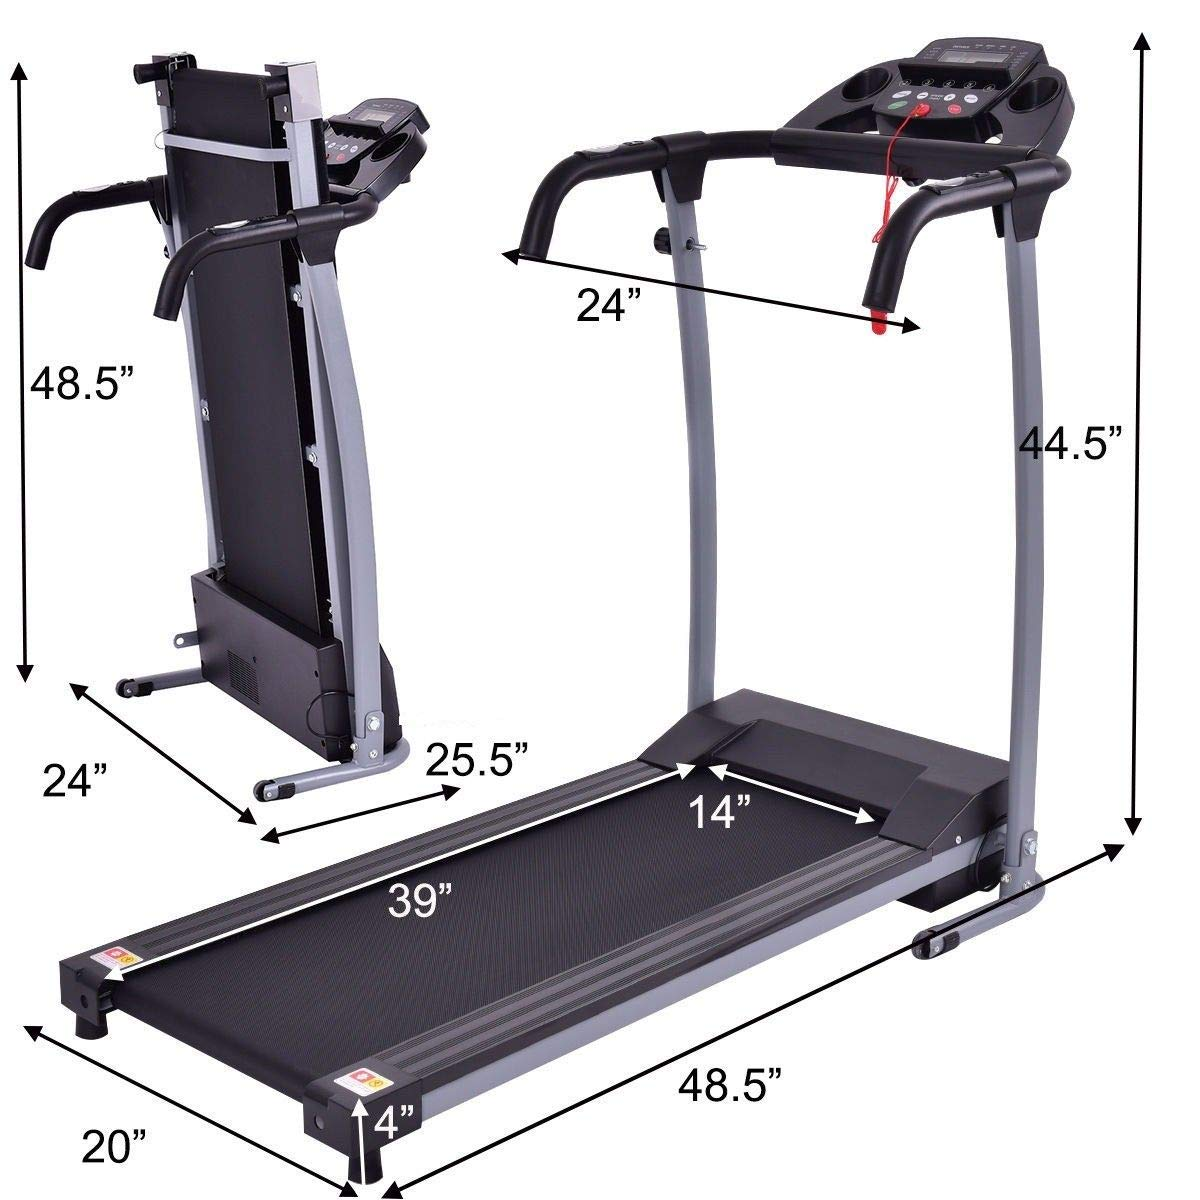 GYMAX Folding Exercise Treadmill Fitness Electric Treadmill Electric Motorized Power Fitness Running Machine 800W W/IPAD Mobile Phone Holder (Black) by GYMAX (Image #5)